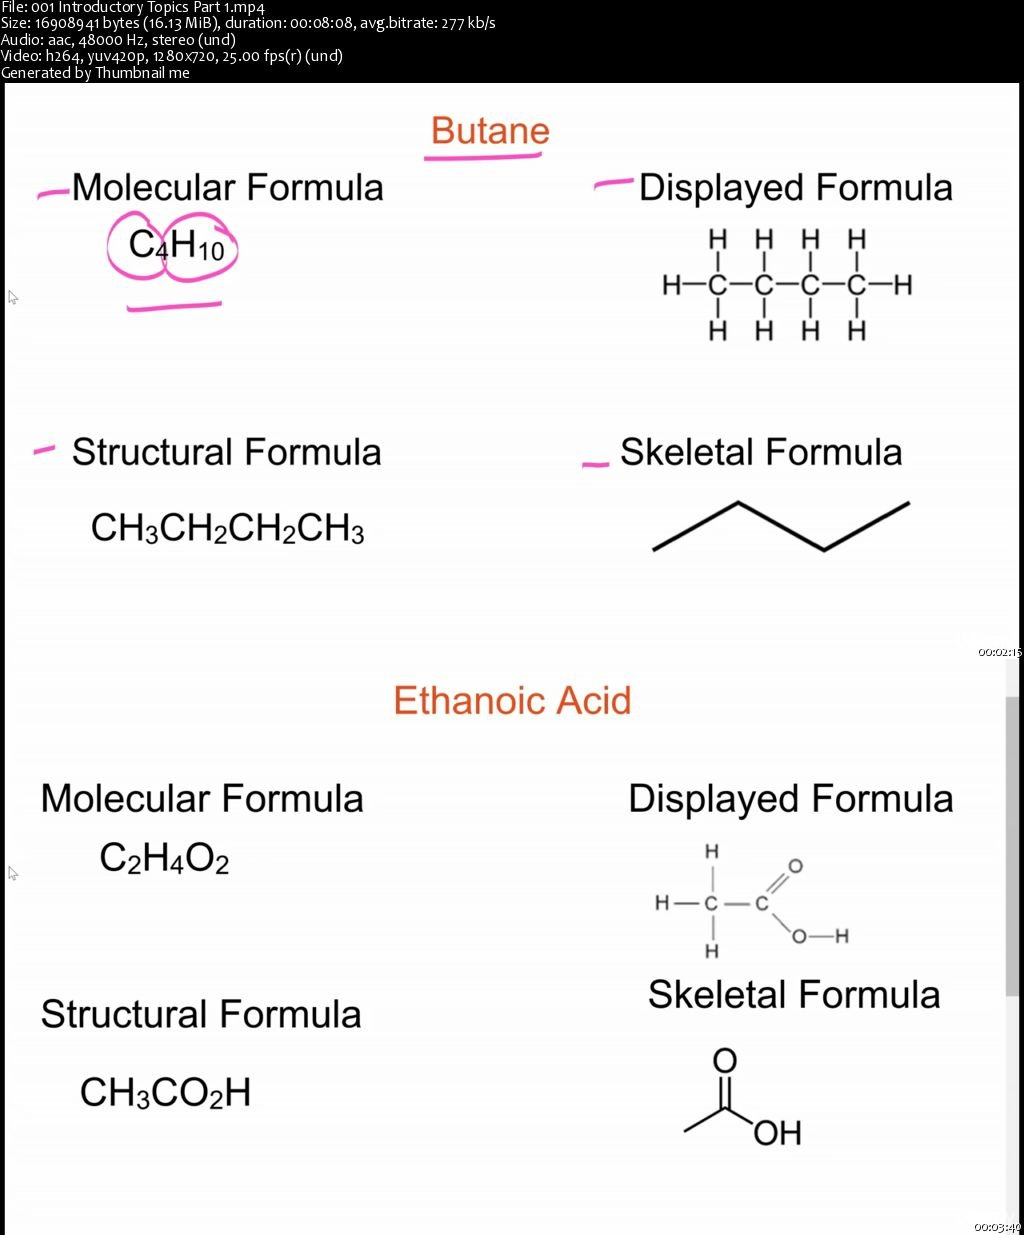 chem coursework The coordinate major provides more flexibility to take non-chemistry courses  recommended by professional schools and the chemistry coursework can be.